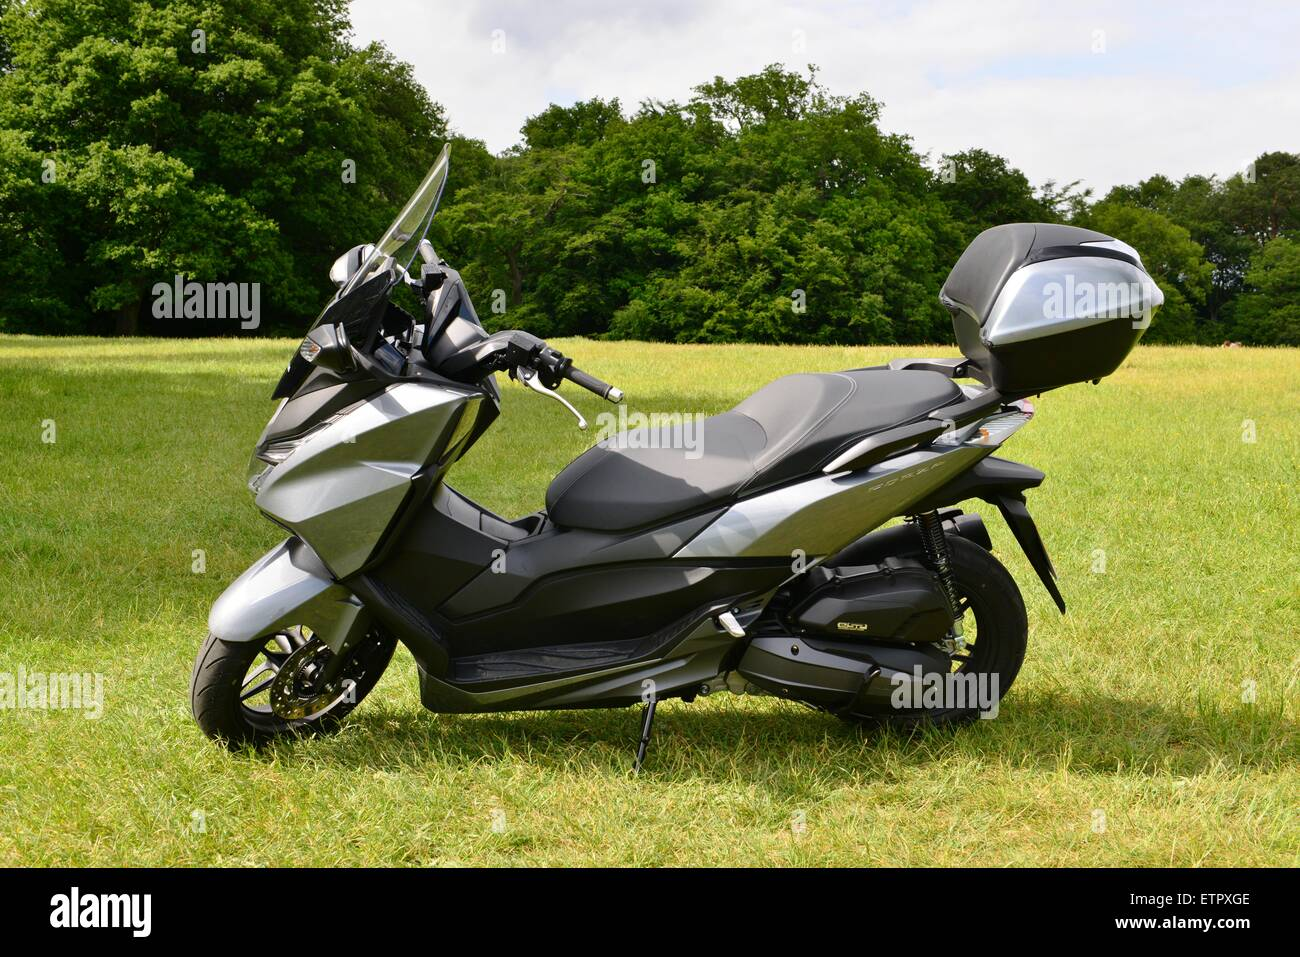 honda forza 125 scooter in a field at boxhill in dorking surrey stock photo royalty free image. Black Bedroom Furniture Sets. Home Design Ideas